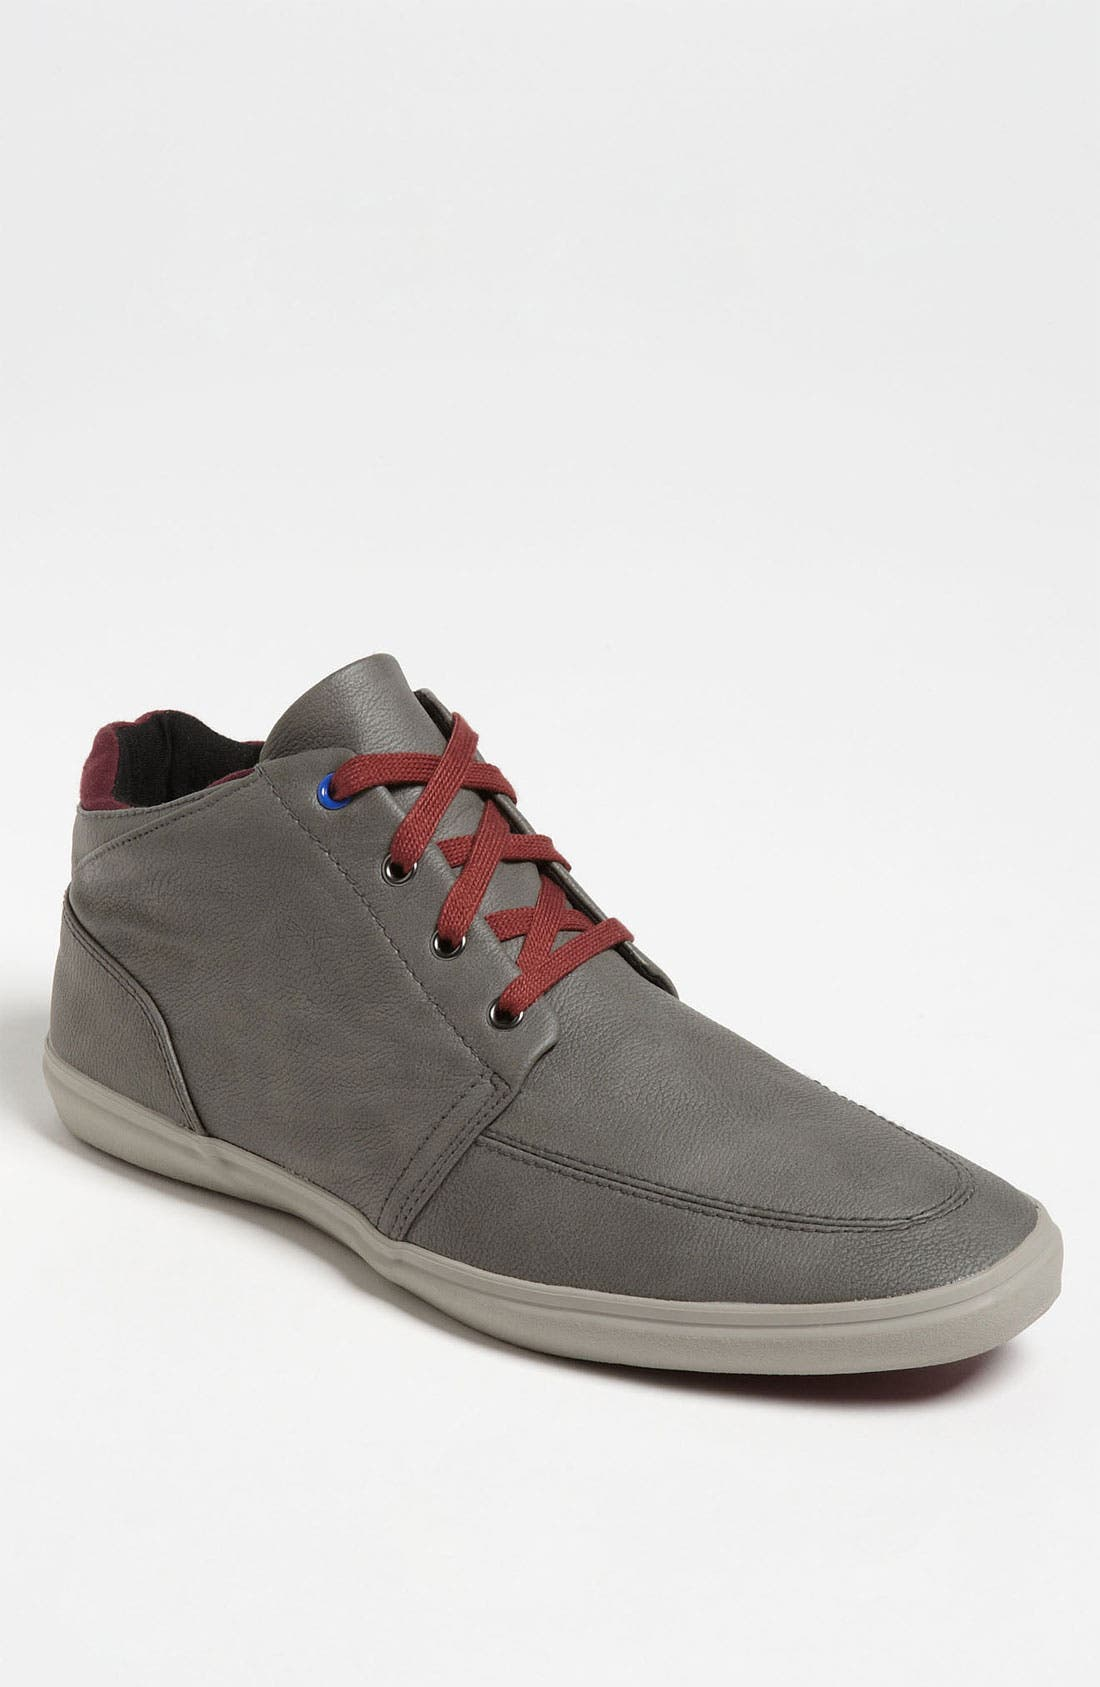 Main Image - ALDO 'Murri' High Top Sneaker